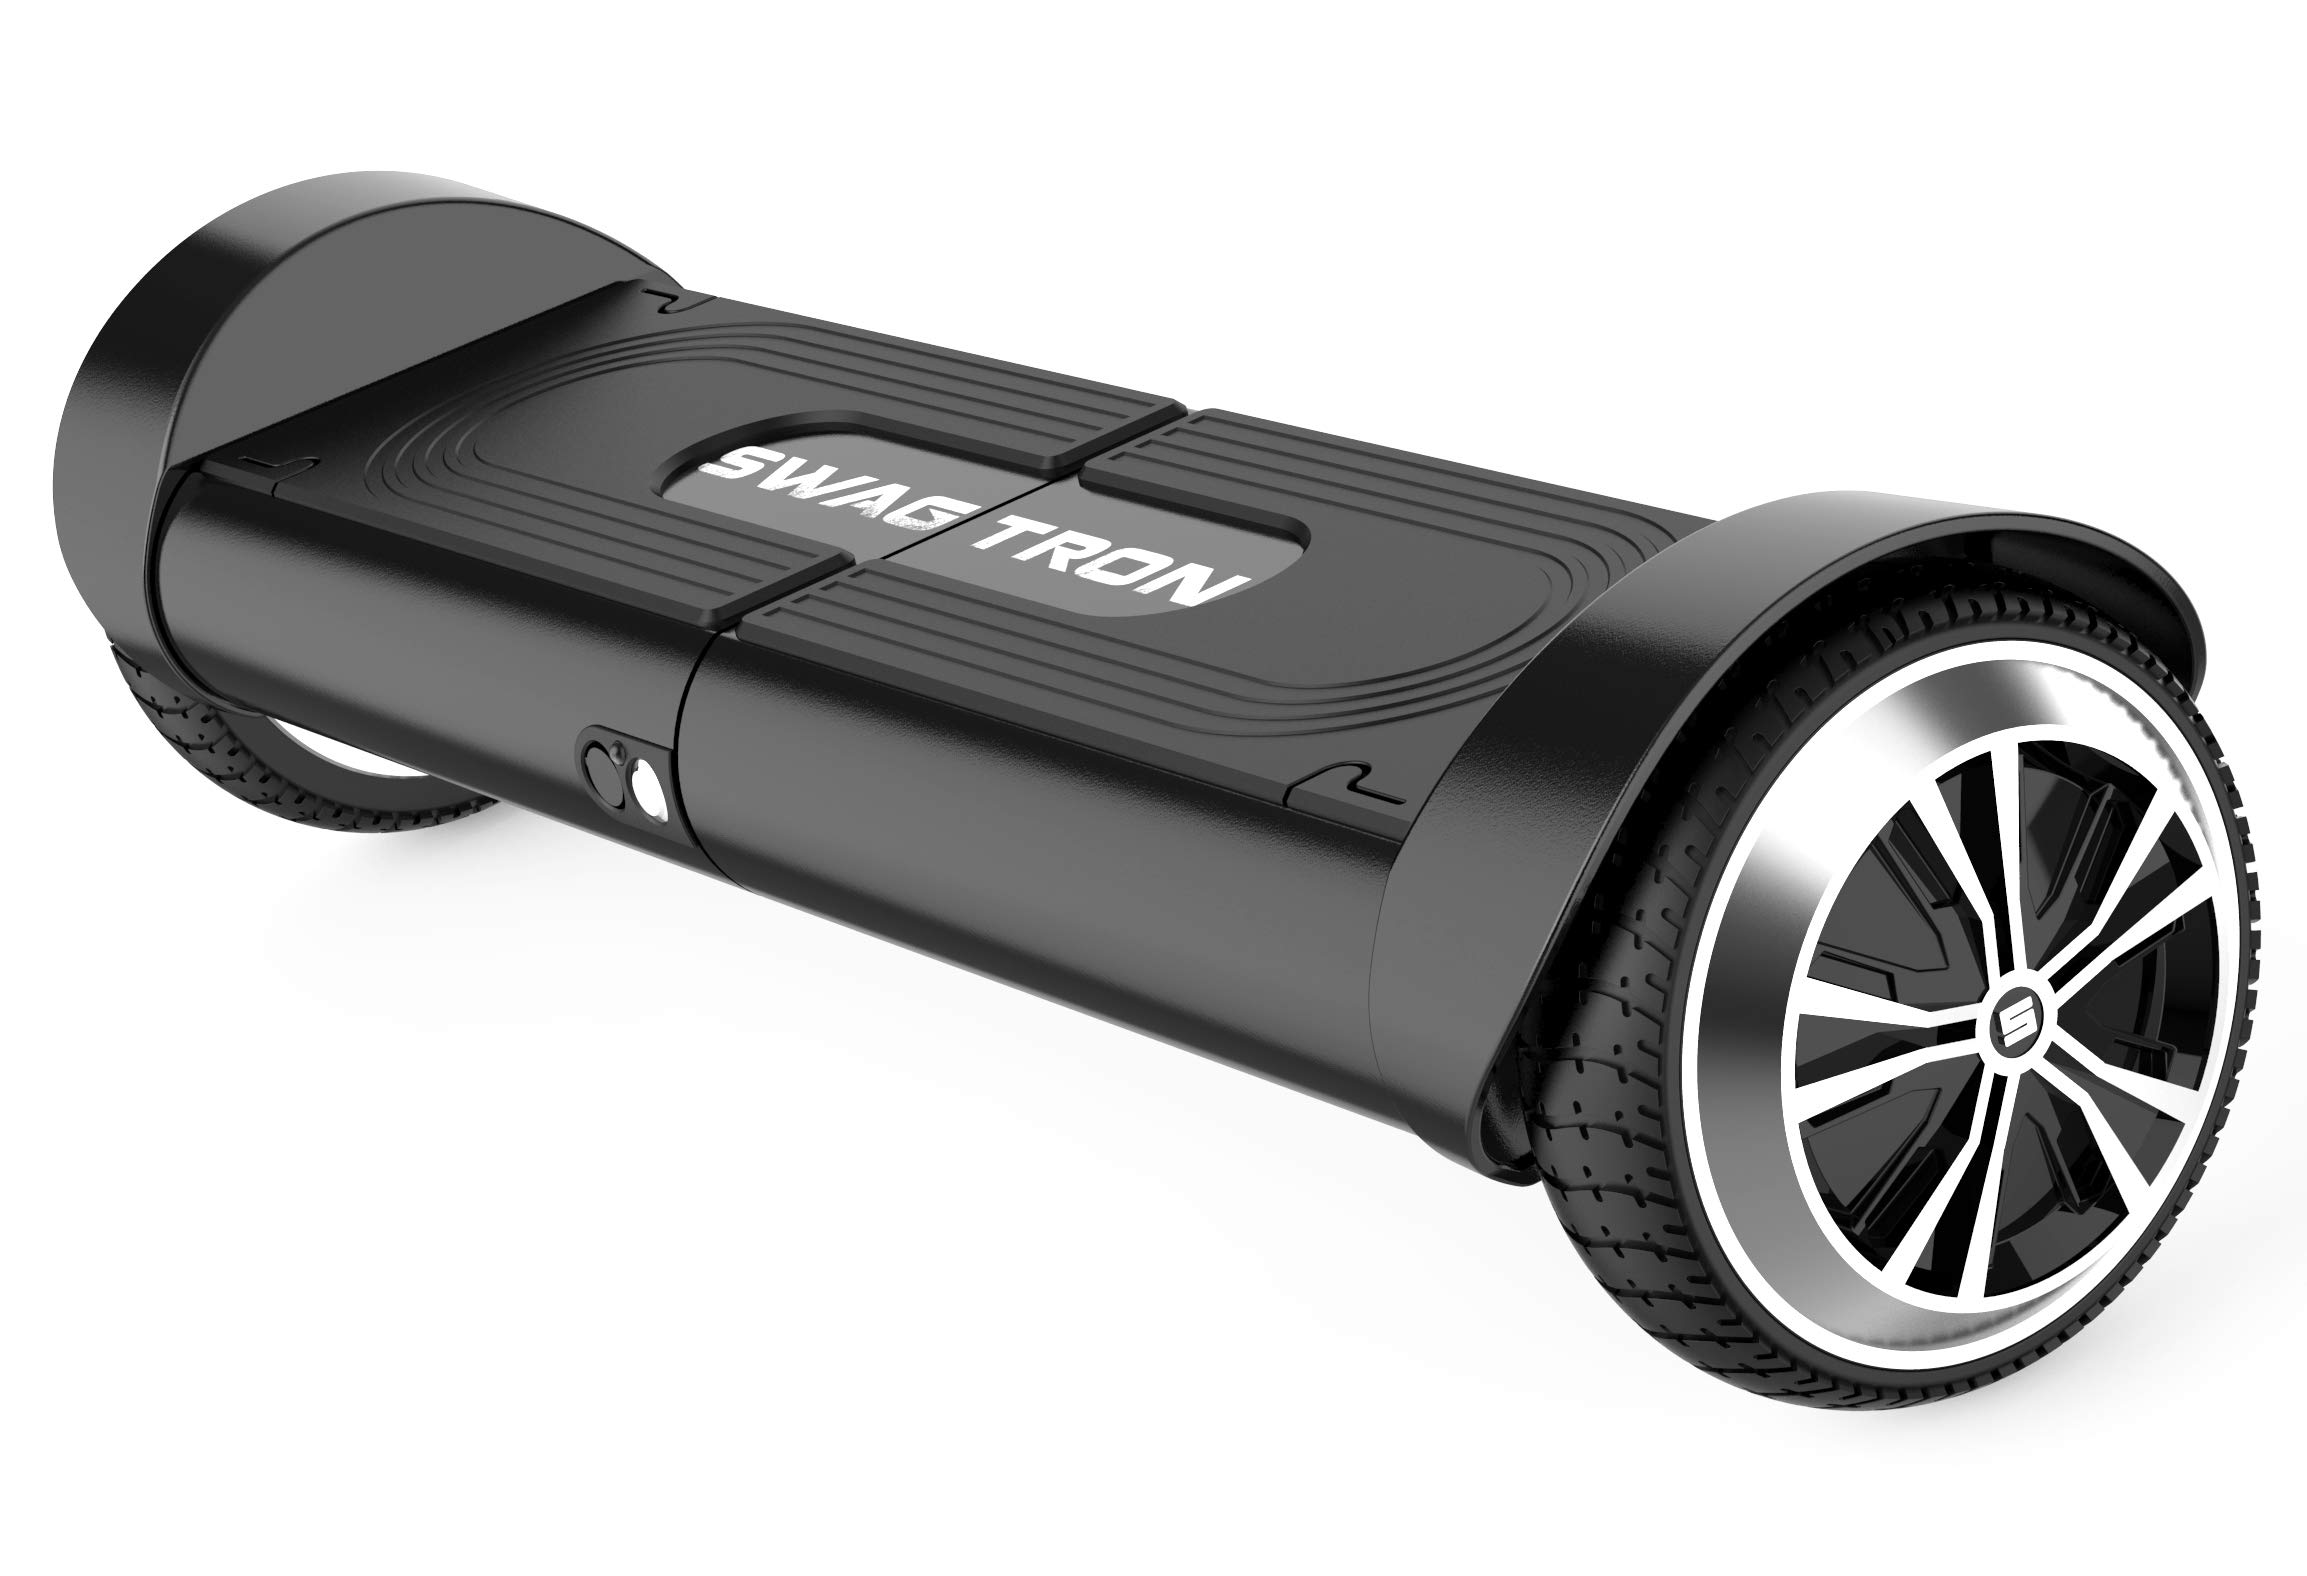 Swagtron 82082-2 Swagboard Duro T8 Lithium-Free Hoverboard Startup Self Balancing and Durable Metal Casing Supports Up To 200 Lbs UL2272 Battery , Black, One Size by Swagtron